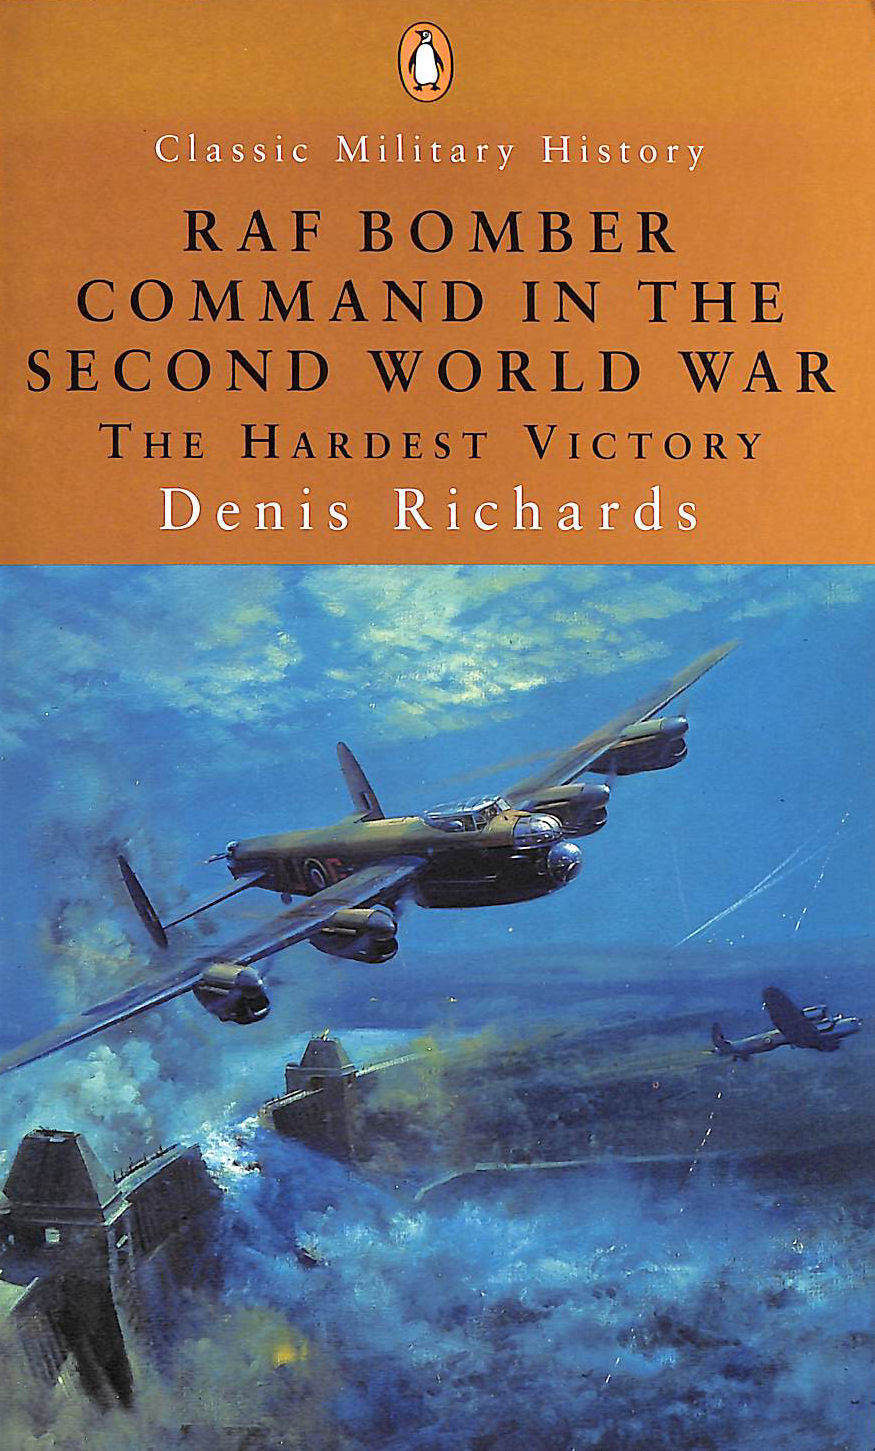 Image for RAF Bomber Command in the Second World War (Penguin Classic Military History S.): The Hardest Victory